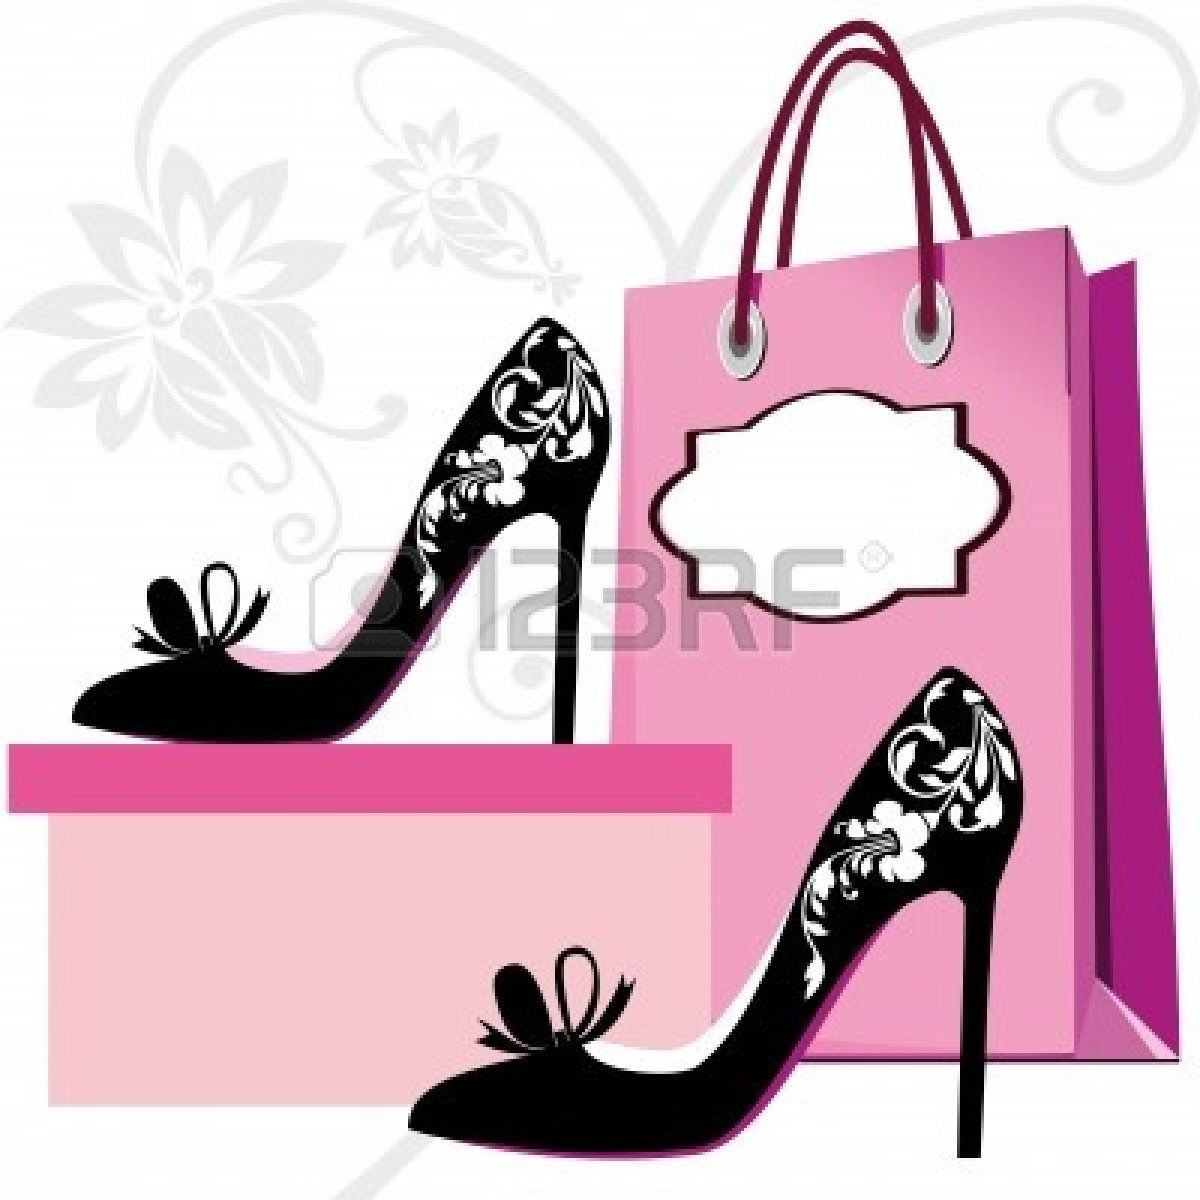 dbb761469cb boutique : Silhouettes of women shoes and shopping bag with floral ...